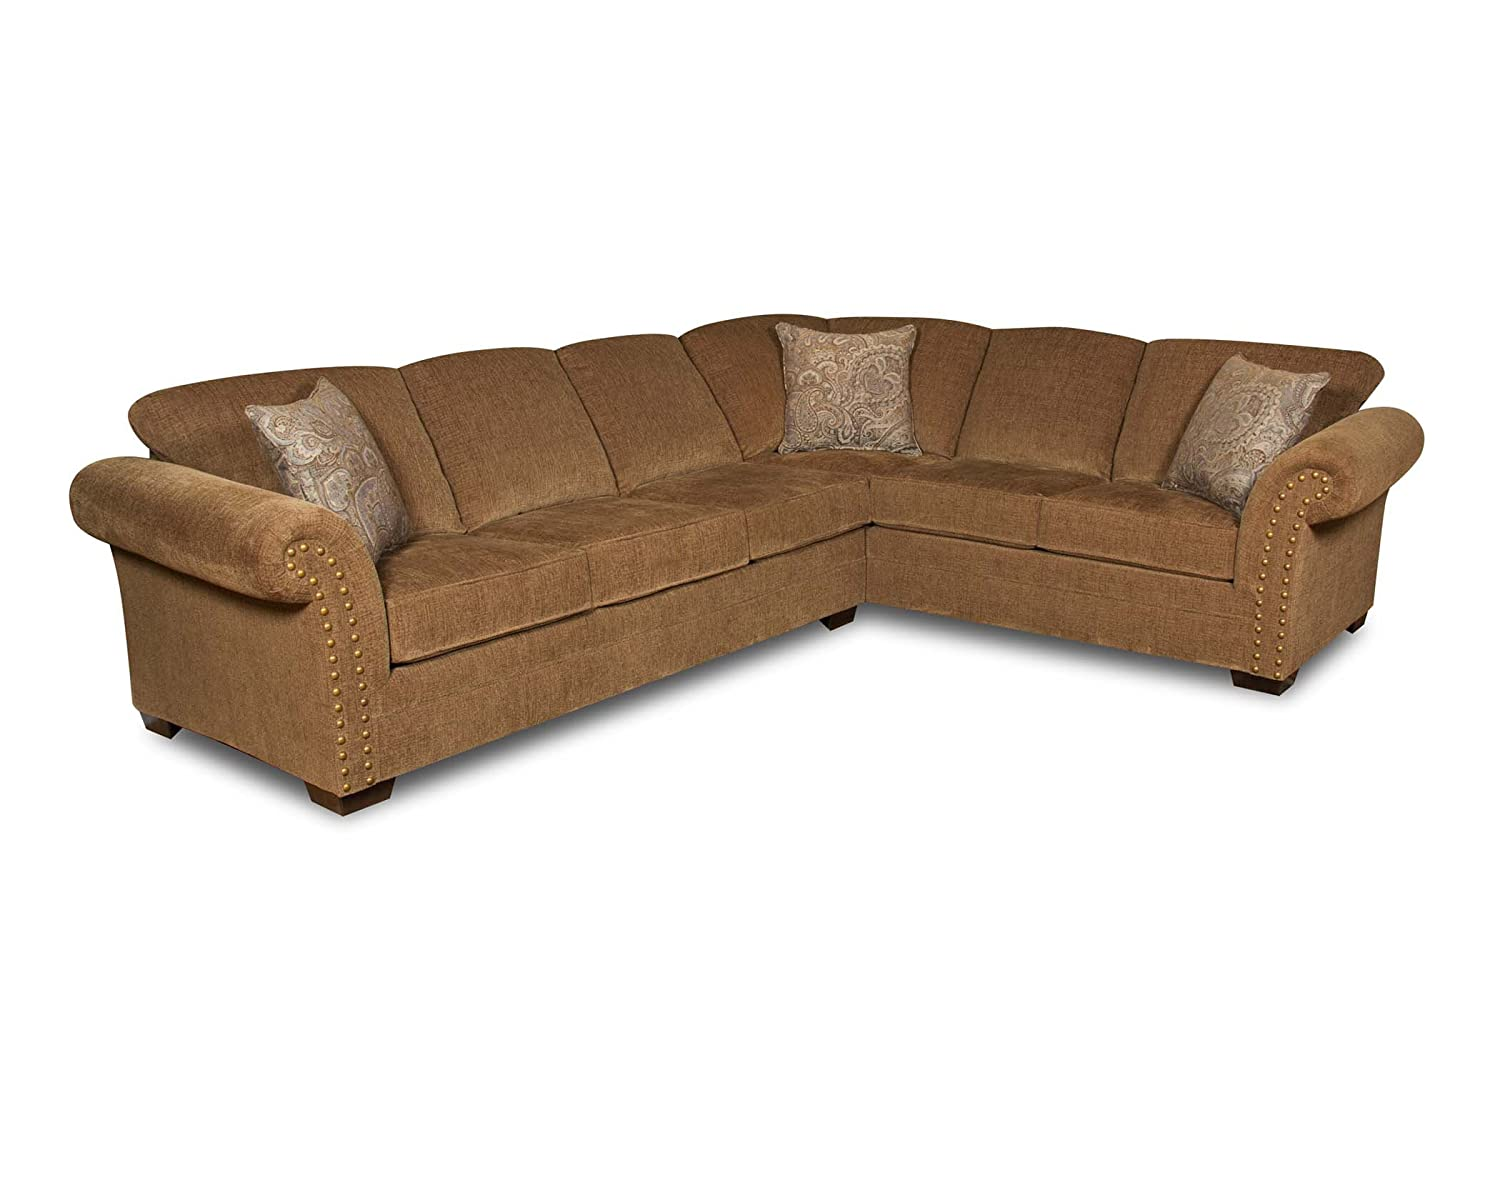 Simmons Upholstery Atmore Sectional Sofa - Atmore Putty